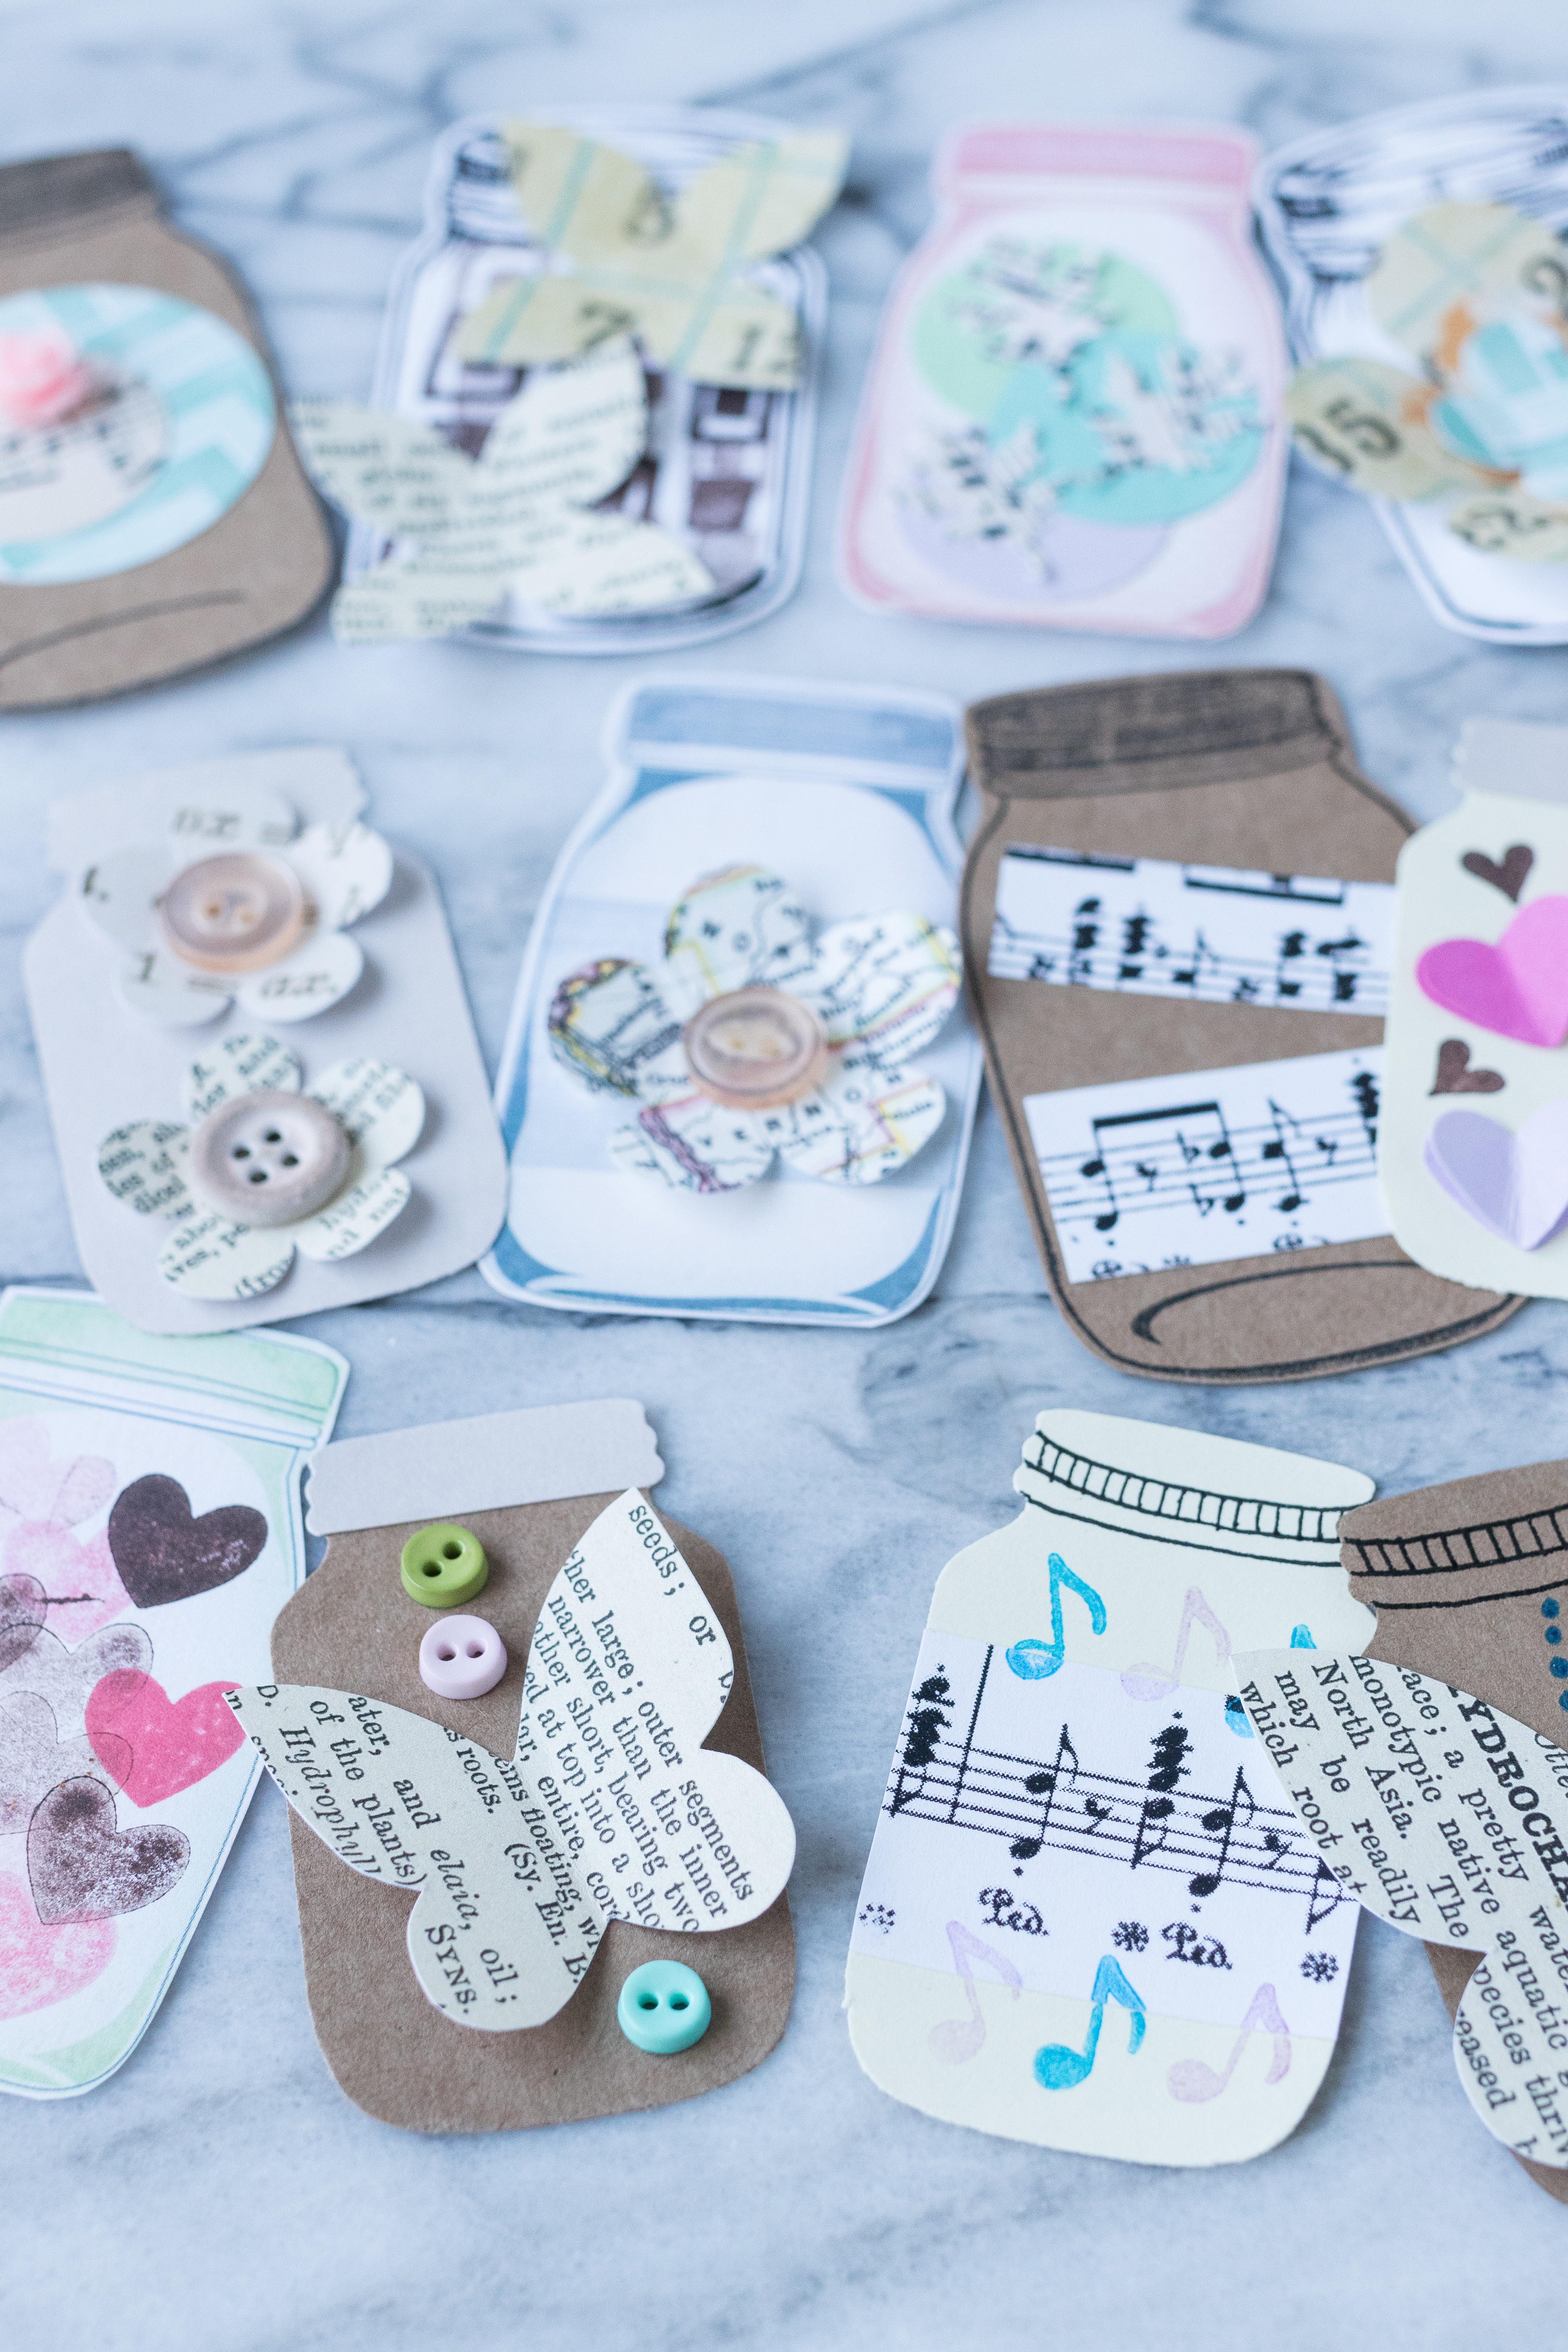 DIY mason jar scrapbook embellishments. Perfect for paper scrapbooking, greeting cards, gift tags, art journals, and much more! #DIY #masonjars #scrapbookembellishments | https://www.roseclearfield.com